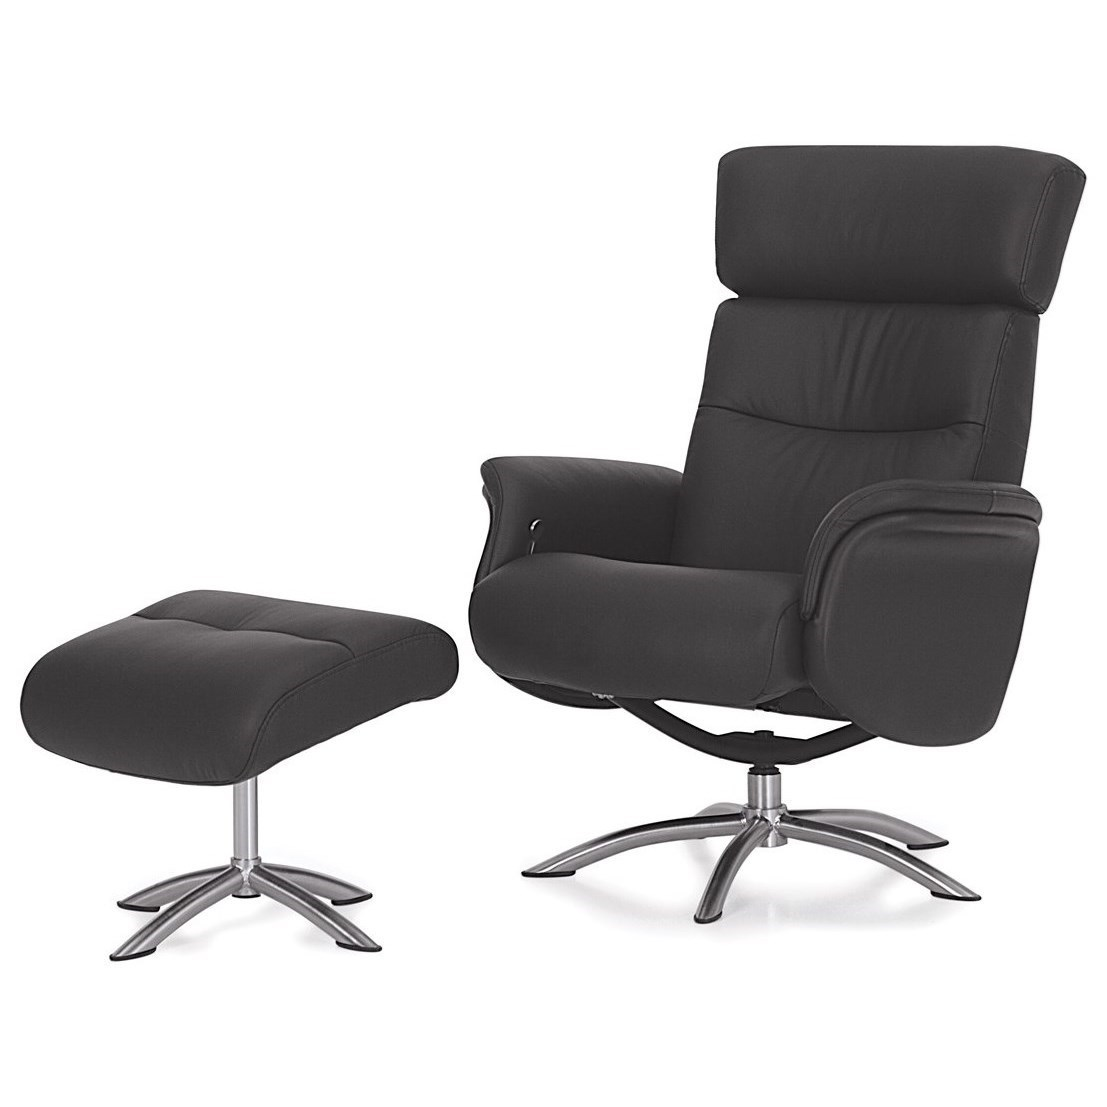 Palliser Quantum Contemporary Reclining Chair With Swivel Base And Ottoman